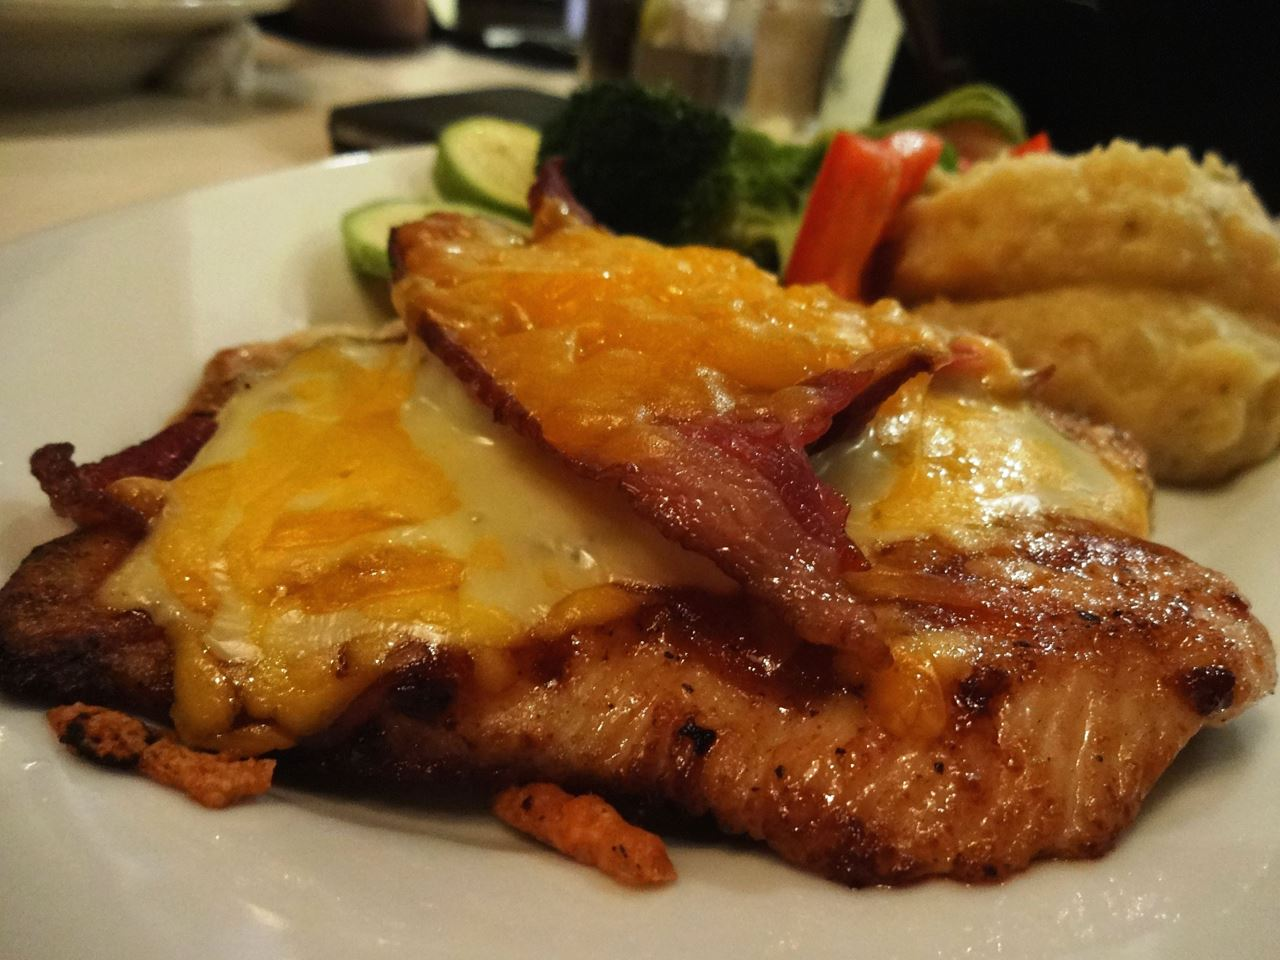 Dinner at Ruby Tuesday 360 Mall Branch and Gulf Branch